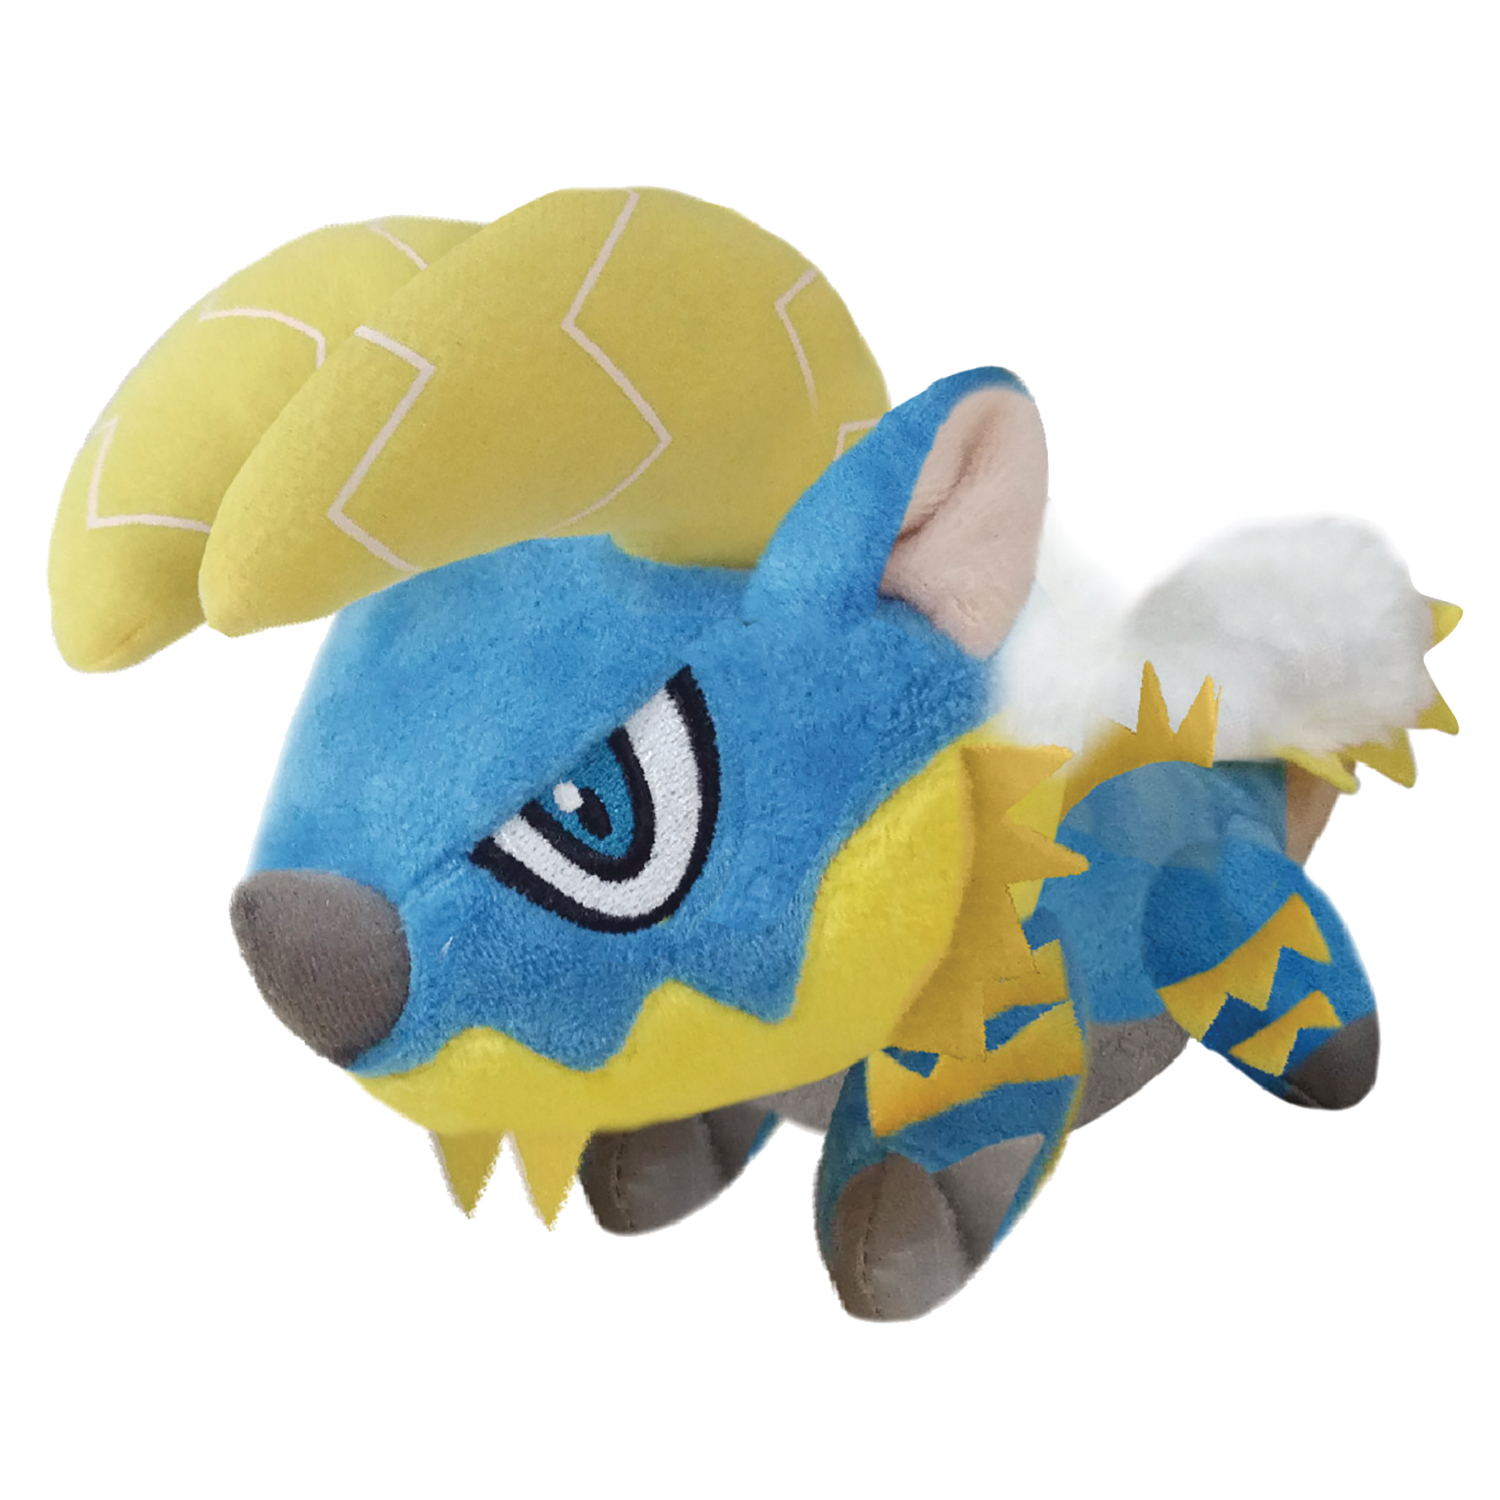 MONSTER HUNTER MONSTER CHIBI PLUSH TOY ZINOGRE